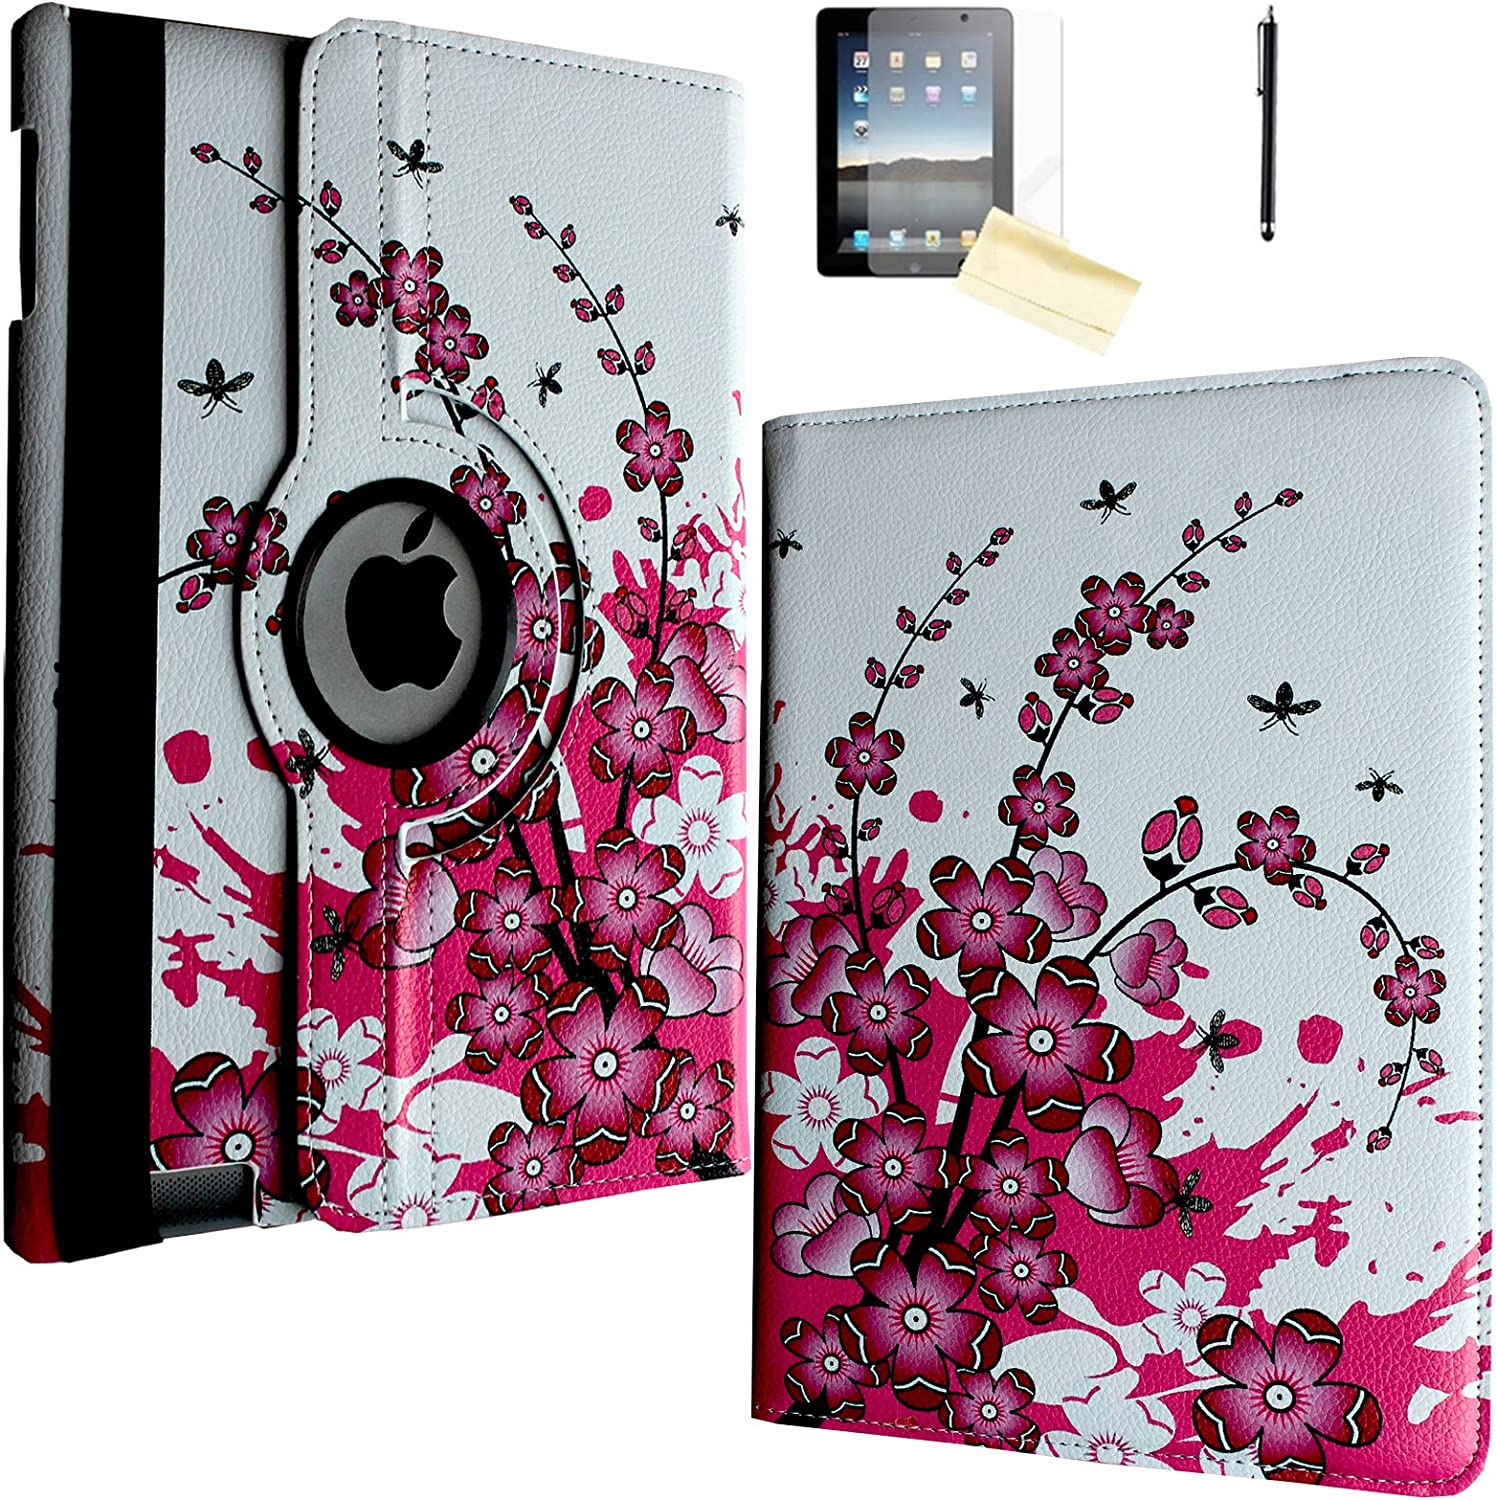 JYtrend Case for iPad 2, iPad 3, iPad 4, Rotating Stand Smart Case Cover Magnetic Auto Wake Up/Sleep for iPad 2/3/4 A1395 A1396 A1397 A1403 A1416 A1430 A1458 A1459 A1460 (Pink White Flower)